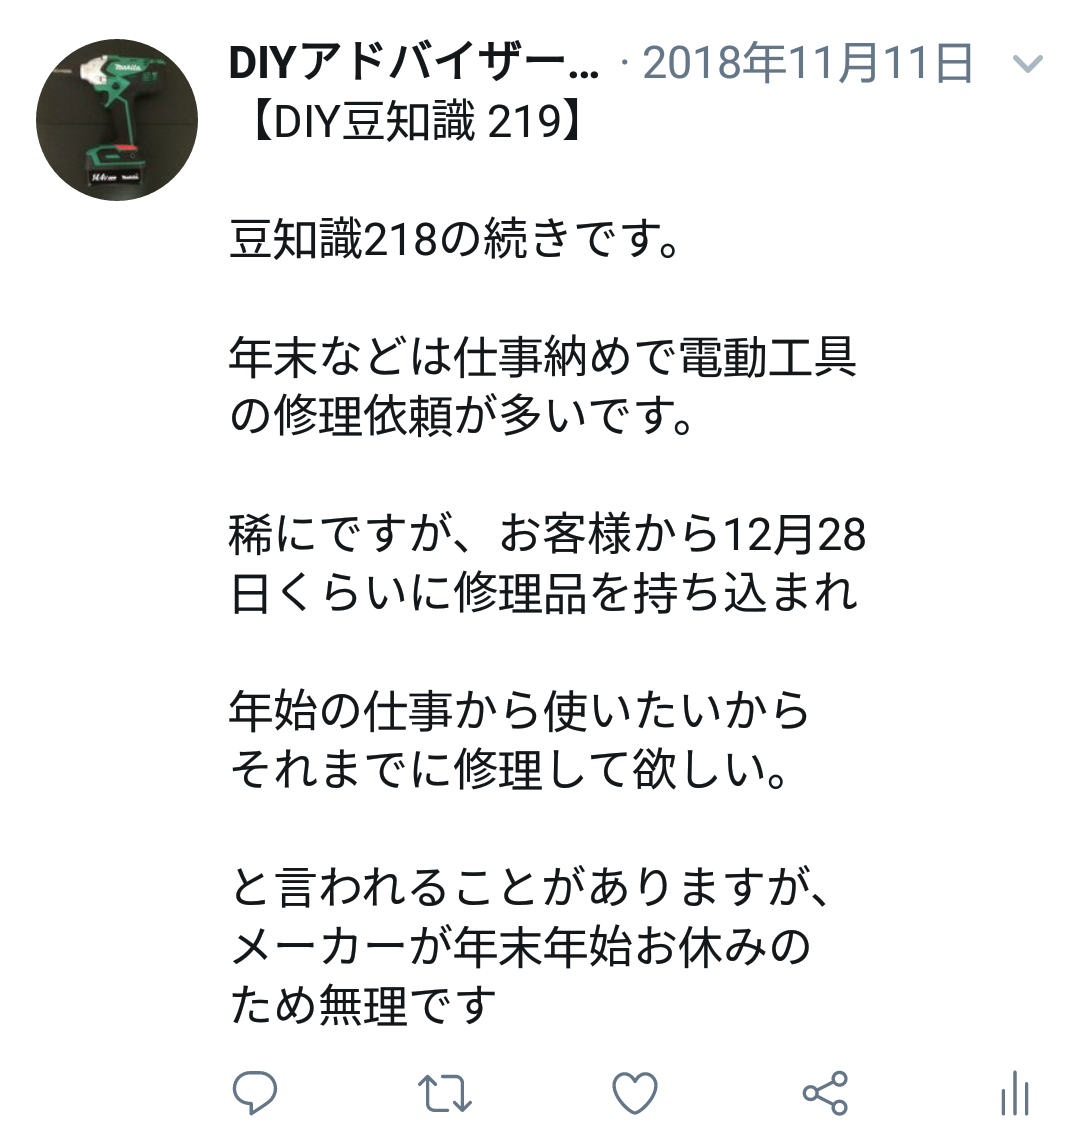 f:id:DIY33:20190408182247p:plain